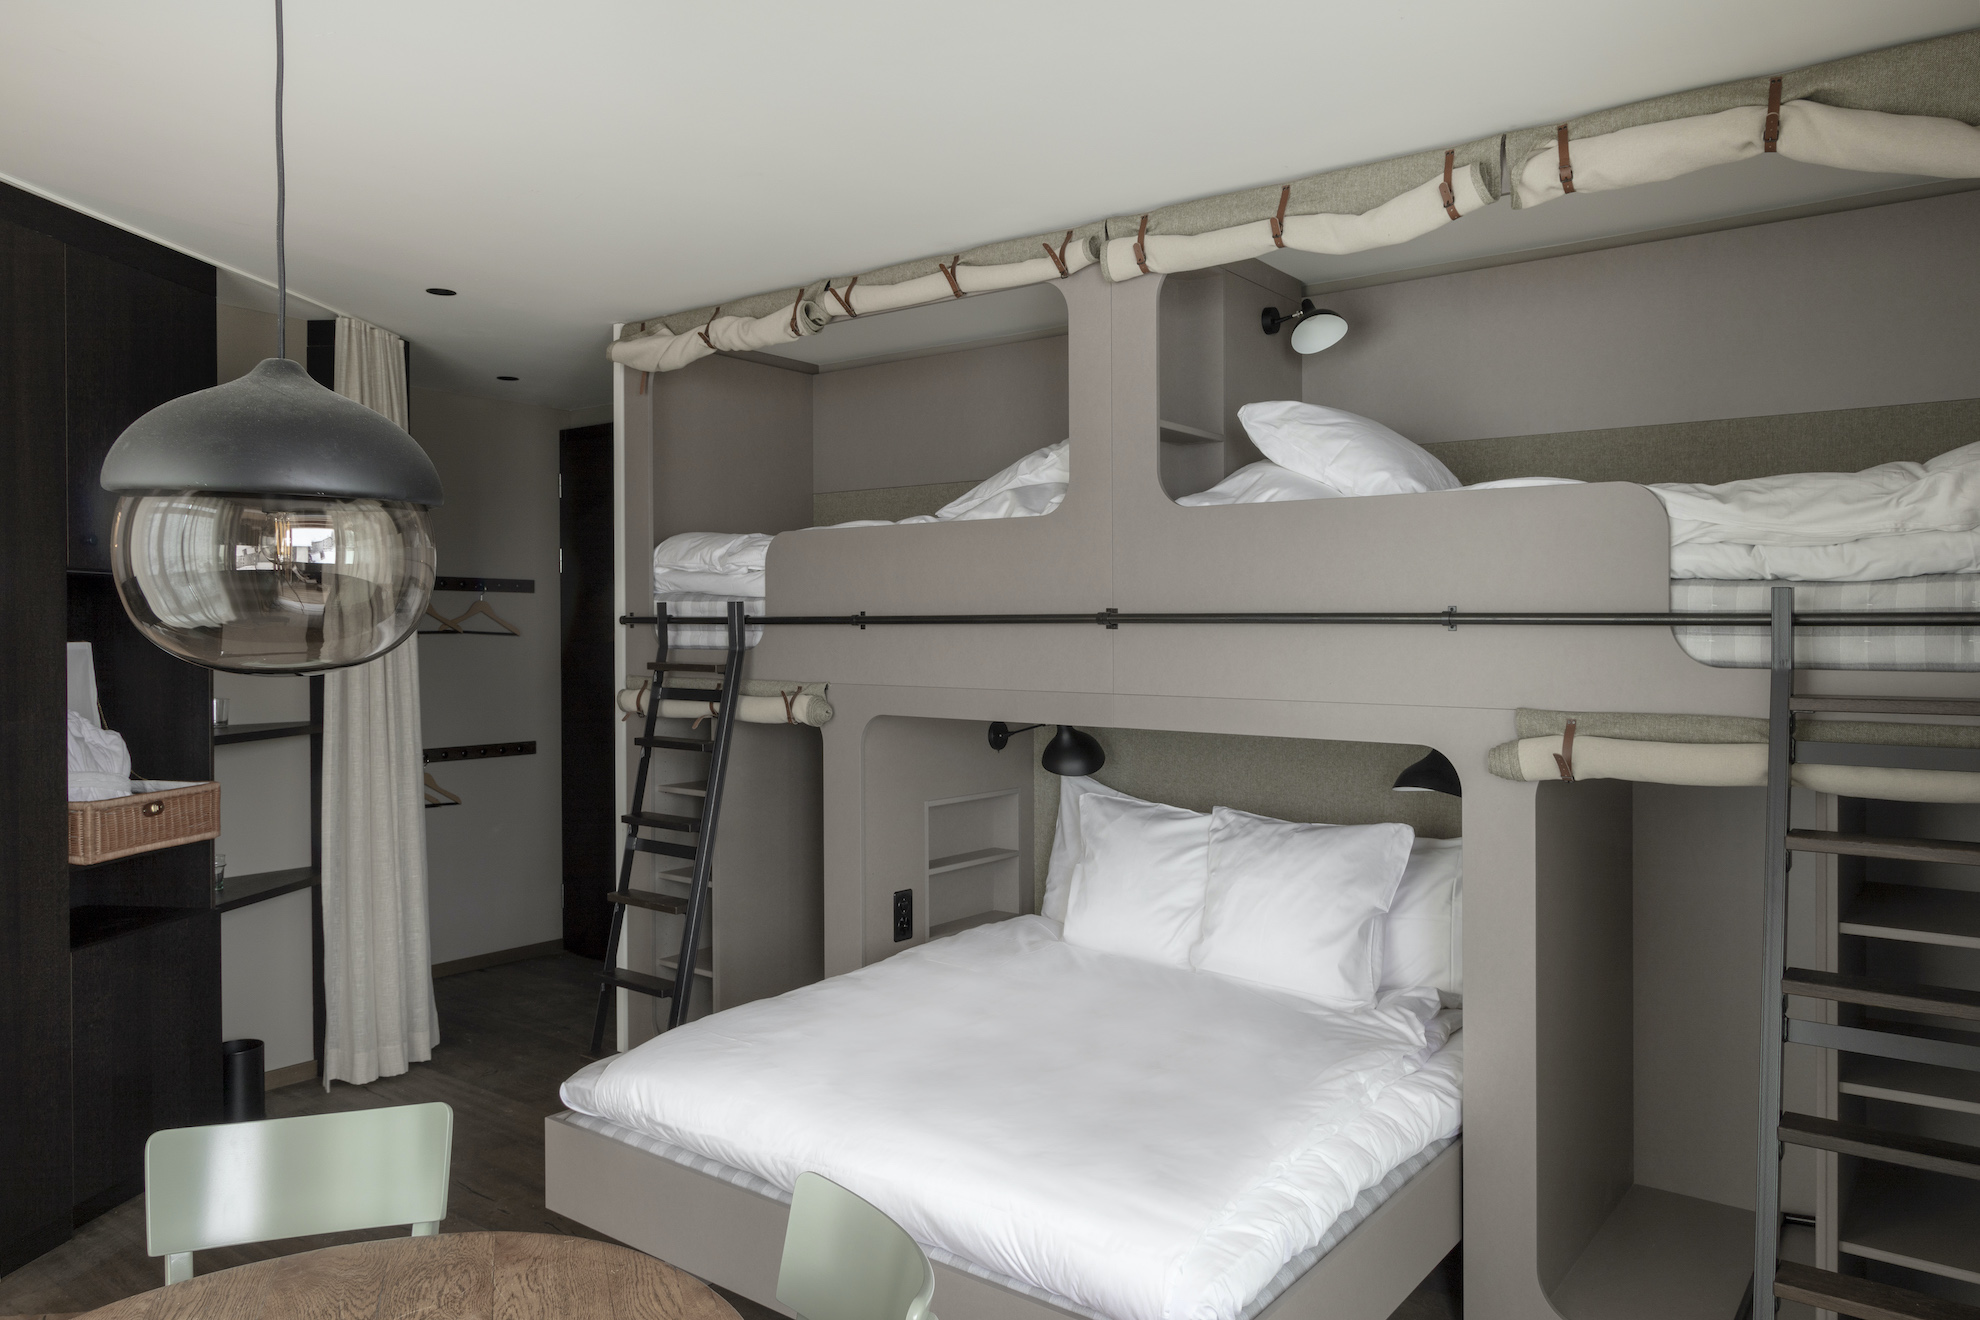 Room with king size and bunk beds